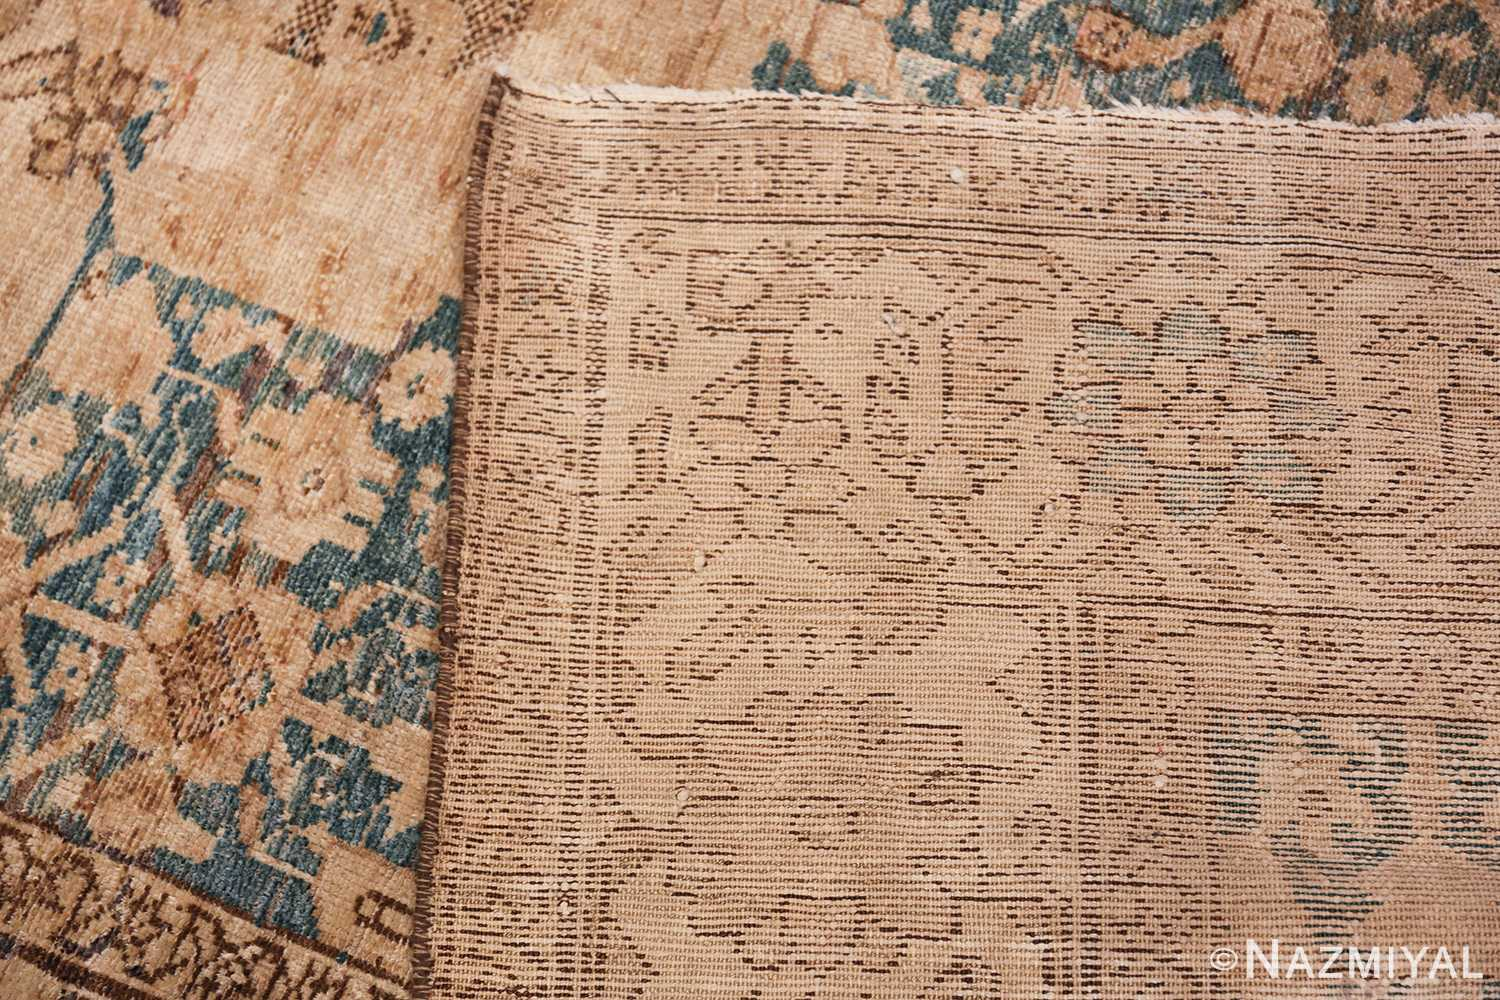 Gallery Size Shabby Chic Antique Persian Malayer Rug 50543 Woven Knots Nazmiyal